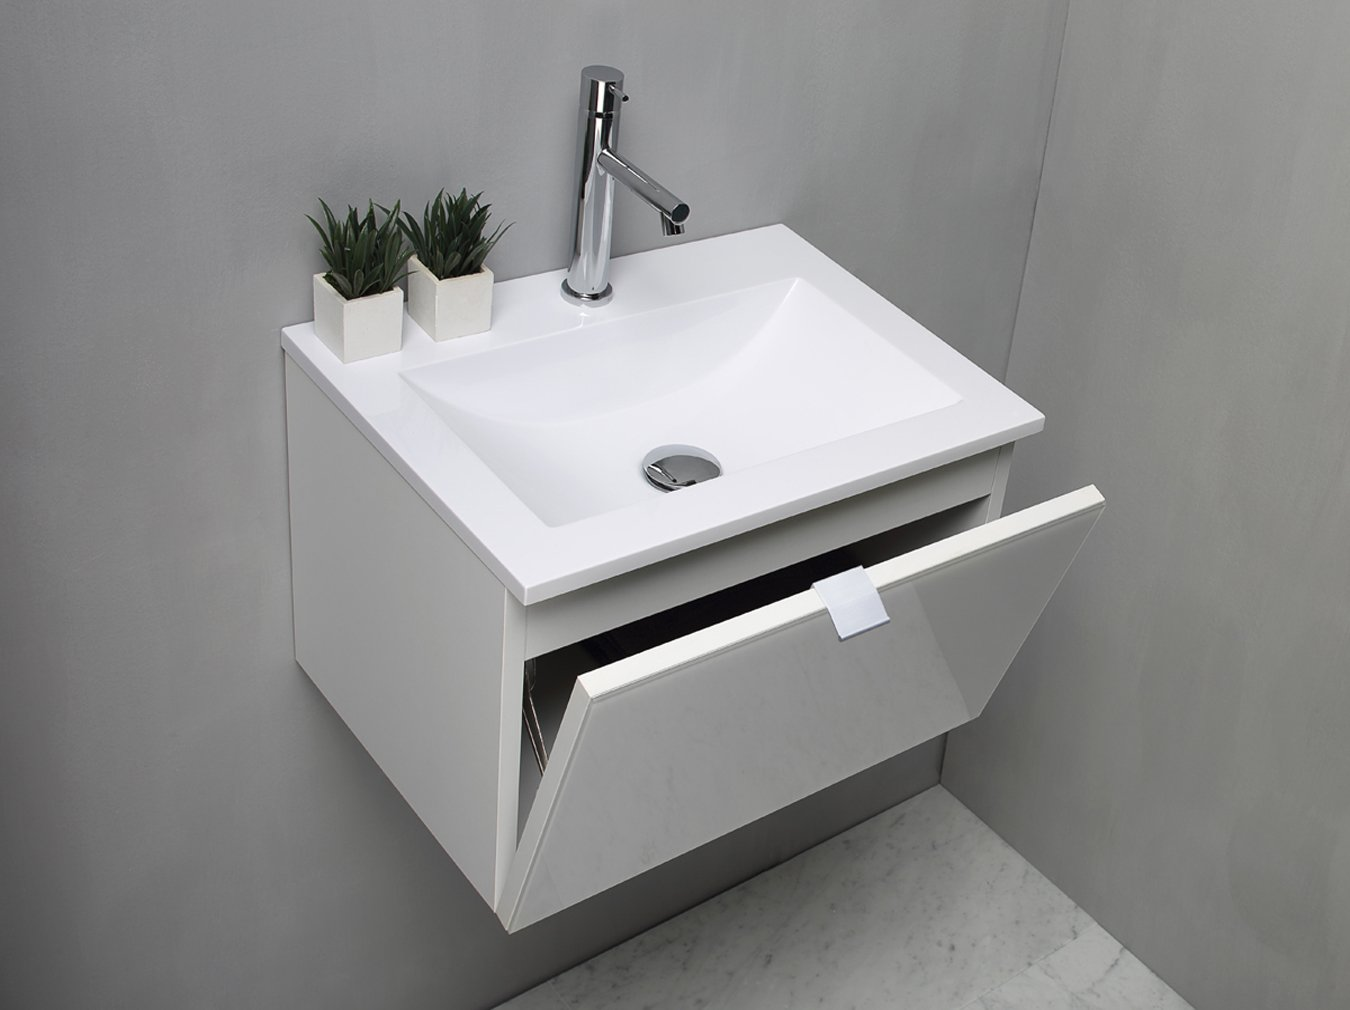 Awesome lavandino bagno sospeso ideas for Mobile lavabo